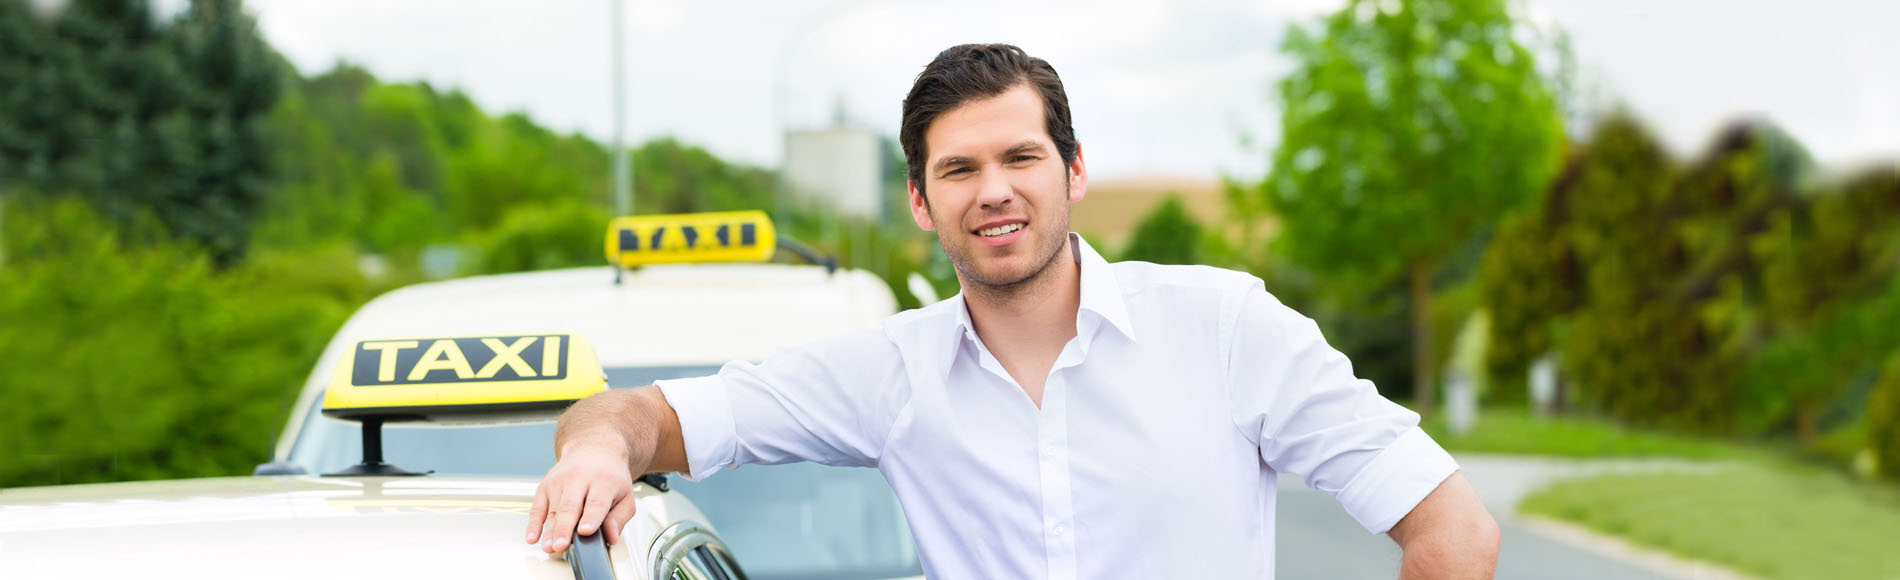 Hertfordshire Taxi Insurance - Ashbourne Insurance